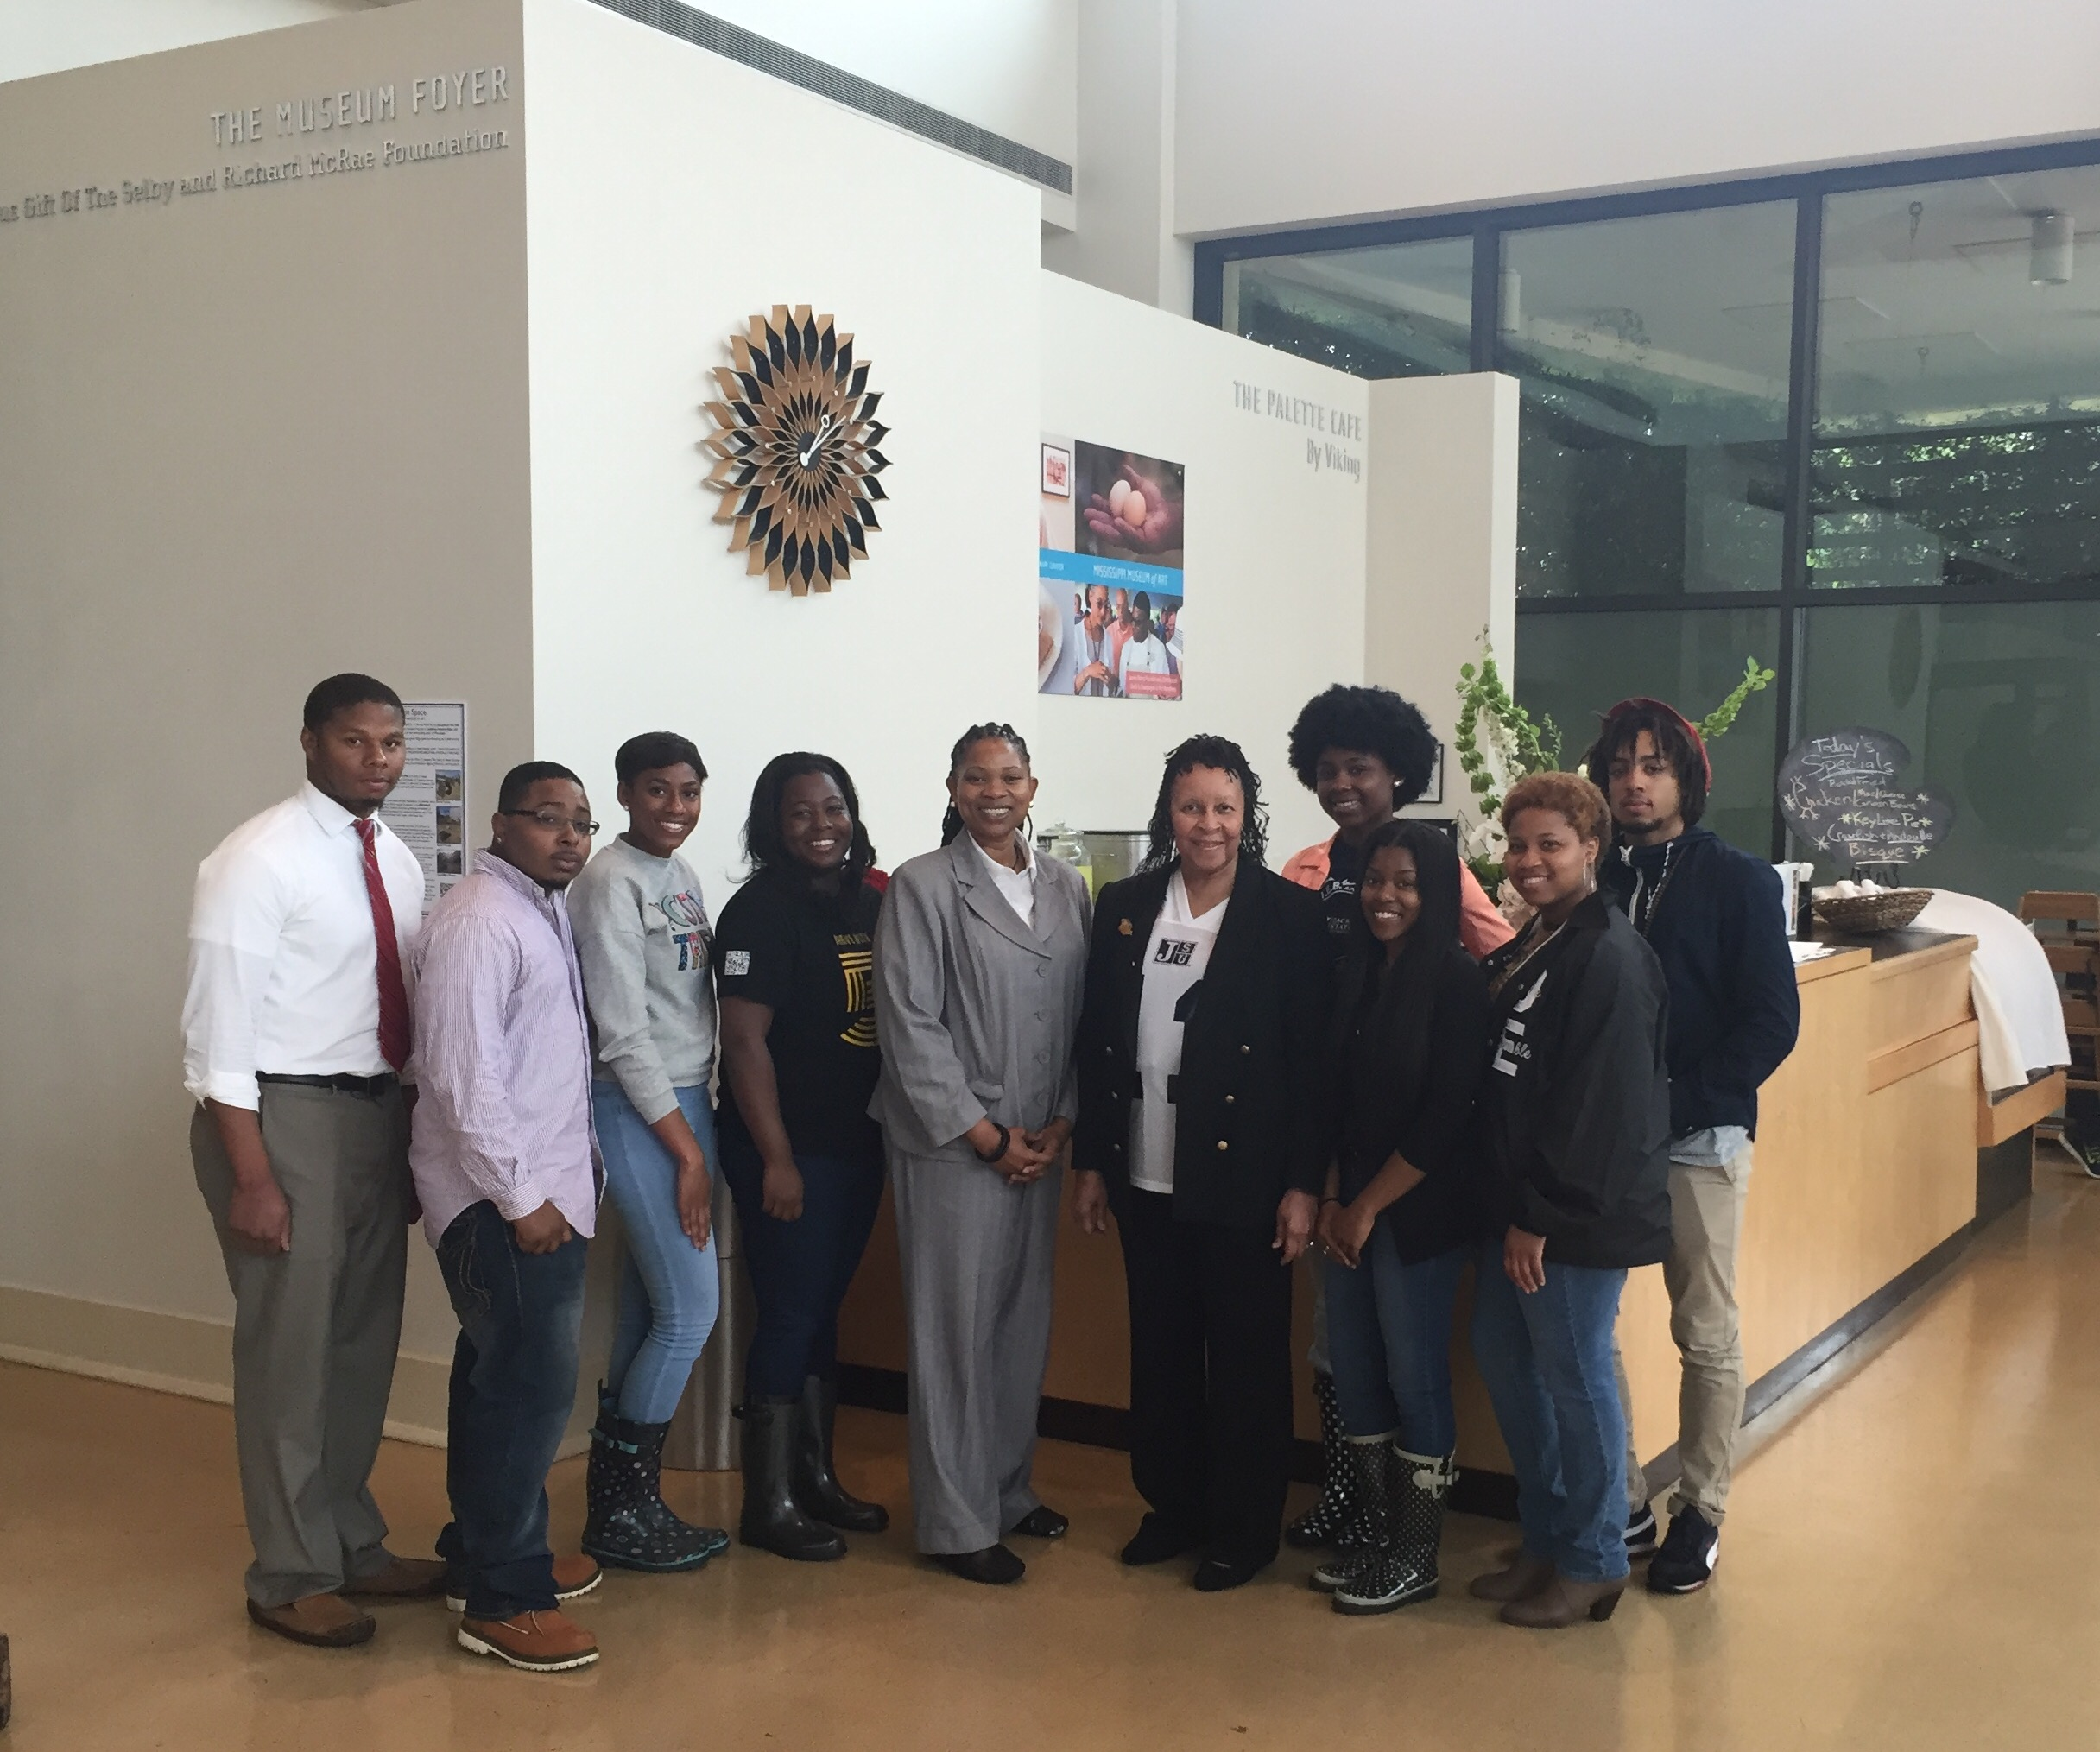 A collaborative digital project by Tougaloo College scholars and Jackson State University scholars was submitted for Storyfest competition. Pictured are (from left) Martinez Walker, Andre Carter, Jordan Hughes, Michel'le Wheatley, Shemeka Nicole Cathey, assistant professor of Political Science; Wilma Mosley Clopton, filmmaker; Amari Barrett, R'Myni Watson; (second row) Dominique Meeks and Harrison Watson.